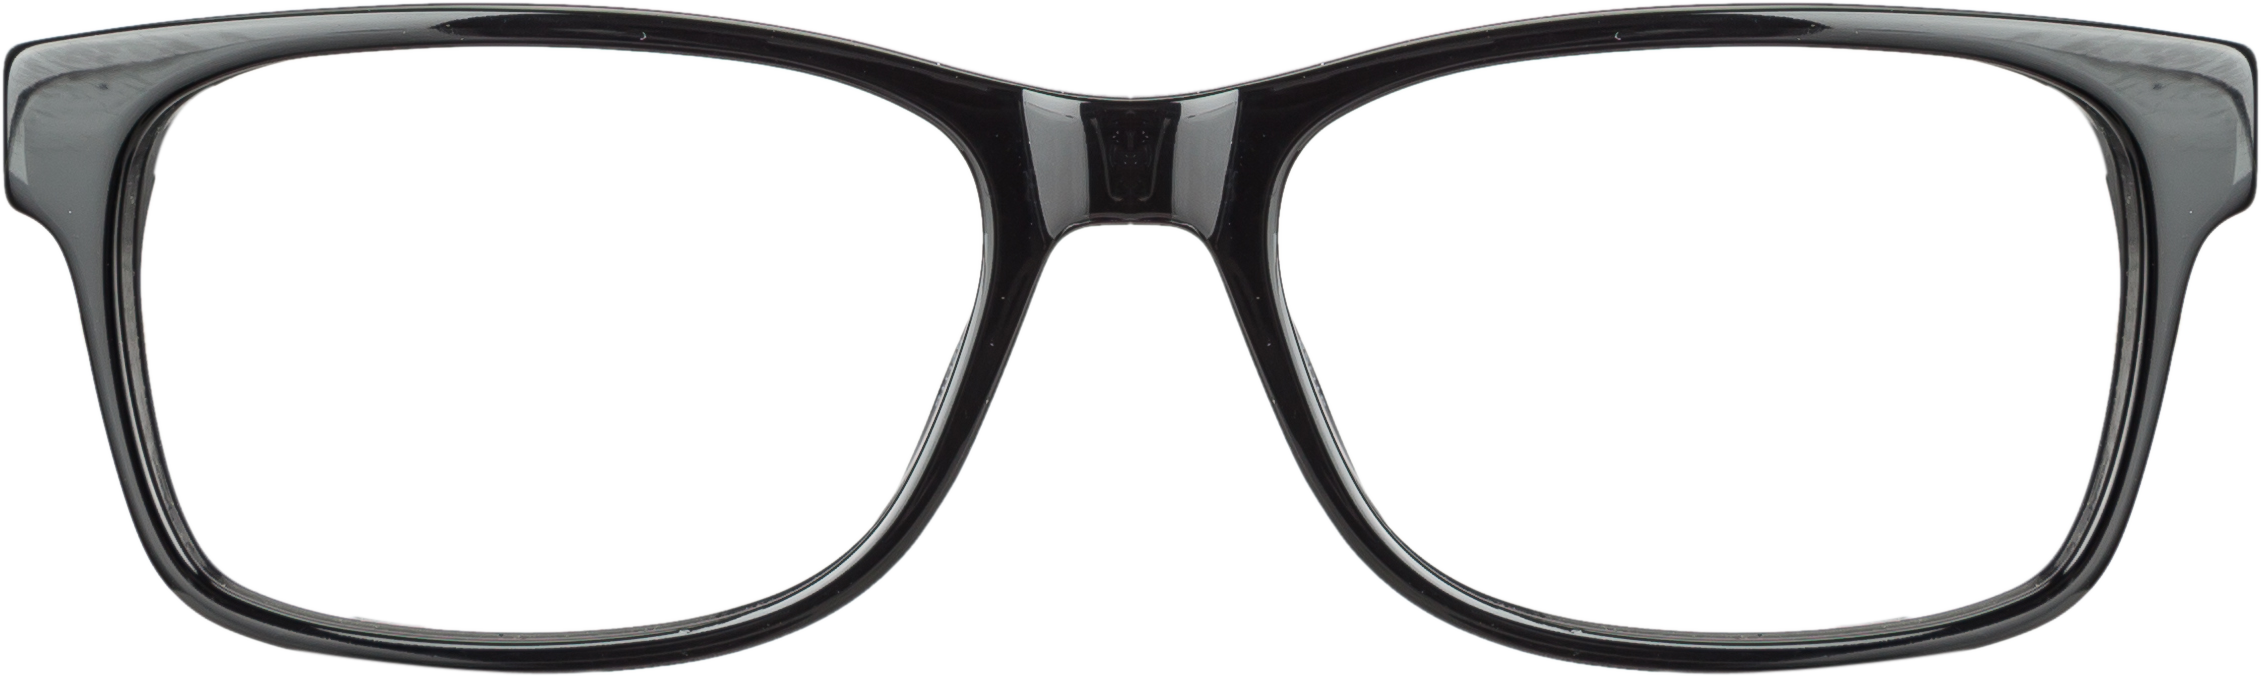 Glasses PNG Clipart - Glasses PNG